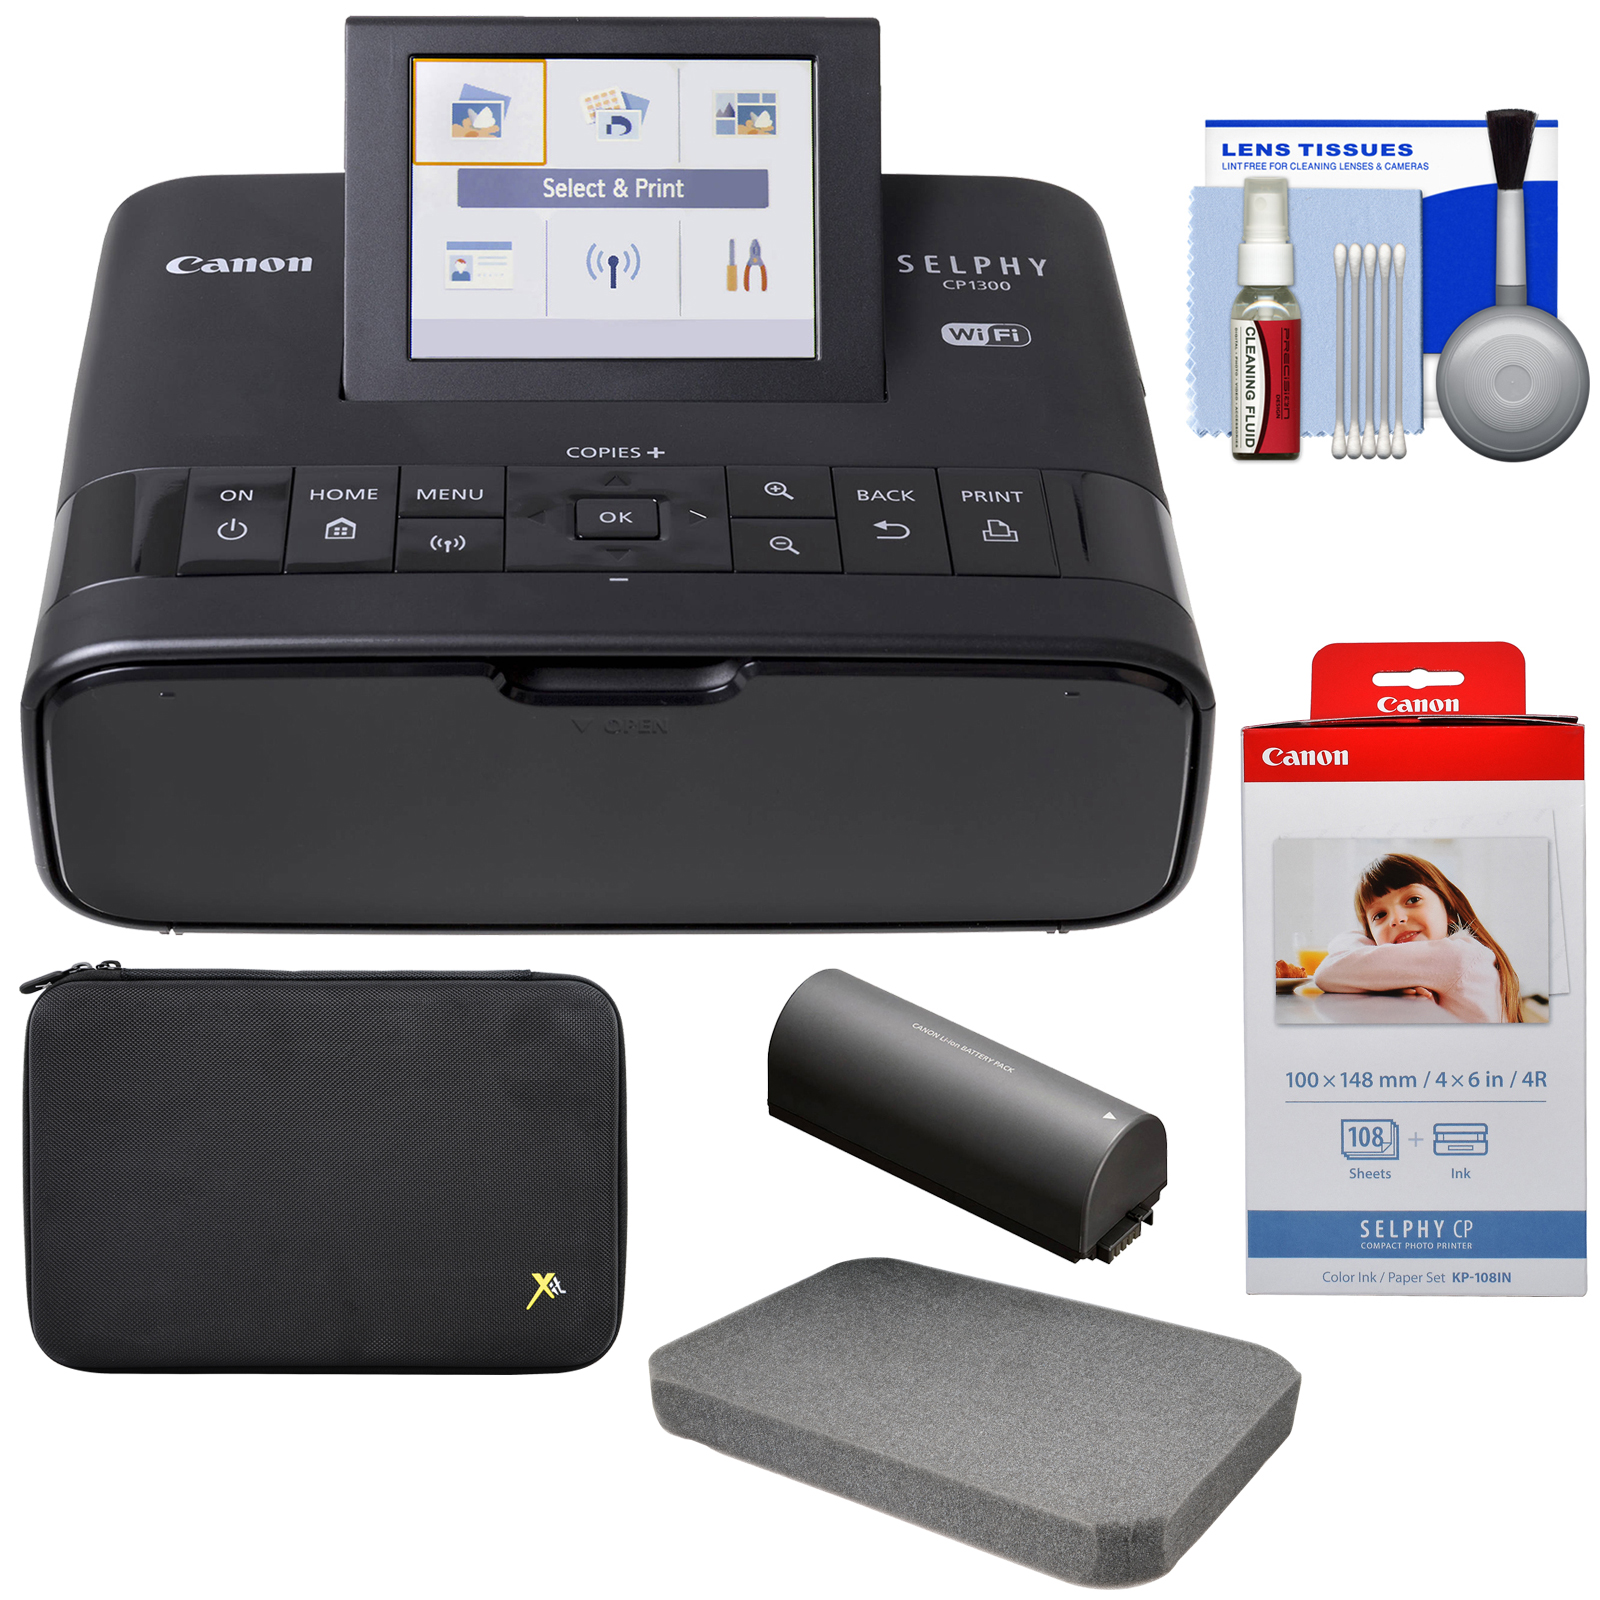 Canon SELPHY CP1300 Wi-Fi Wireless Compact Photo Printer with NB-CP2LH Battery Pack + KP-108IN Color Ink Paper Set + Custom Case Kit